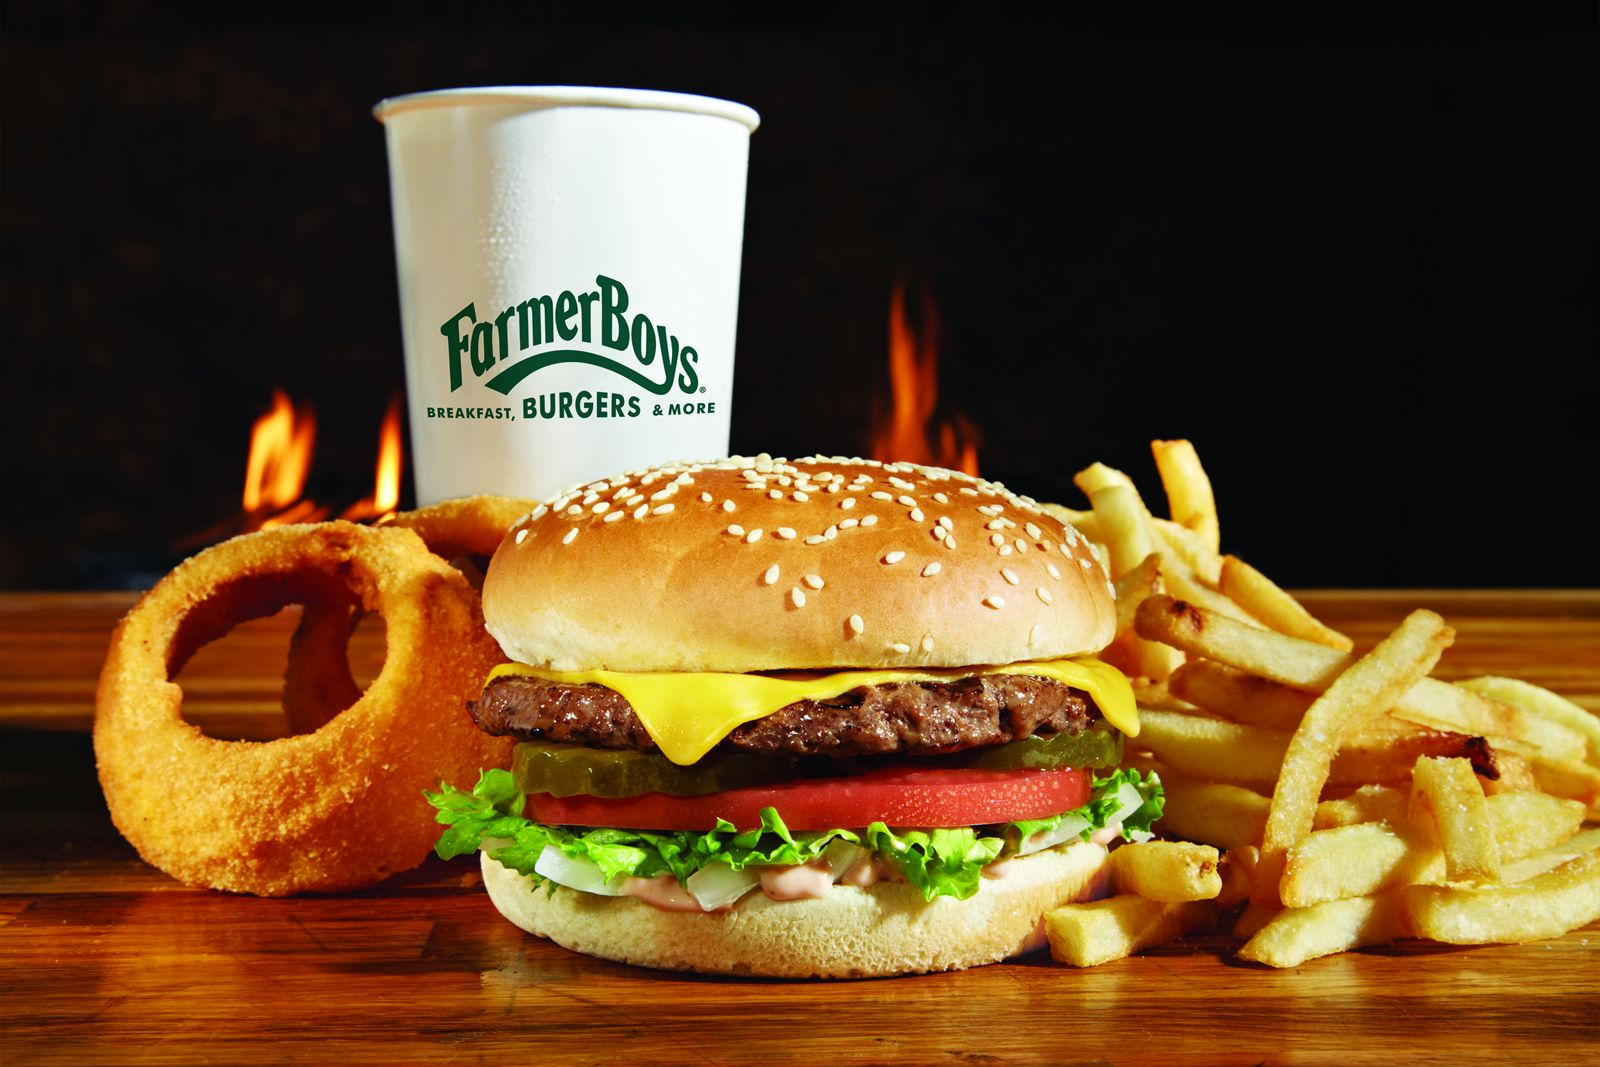 Farmer Boys Returns Home to Perris, Calif. with the Opening of Its Milestone 100th Restaurant